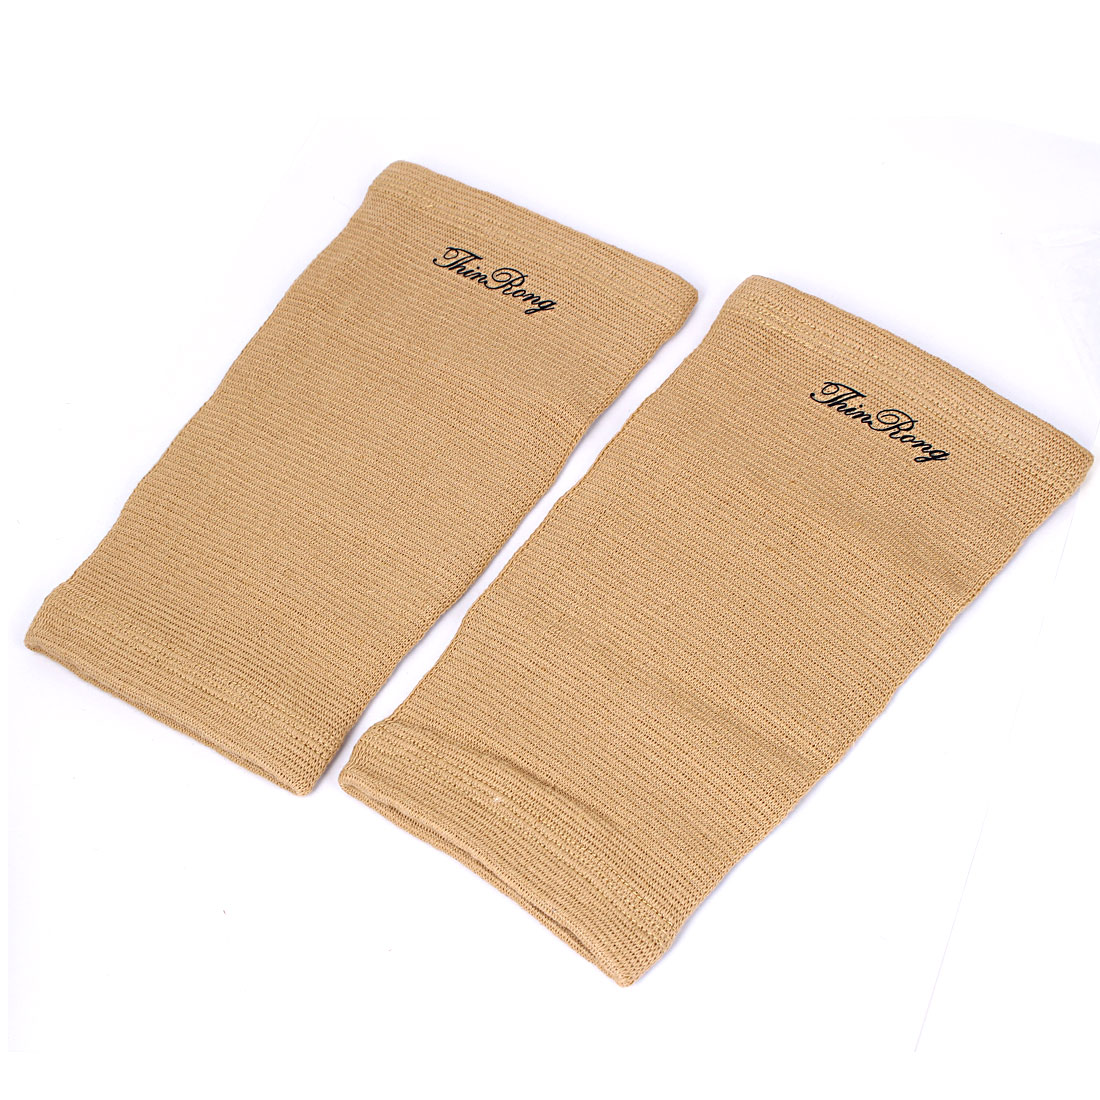 Basketball Football Sports Camel Color Elastic Hand Arms Elbow Supports Protectors Guard Pair